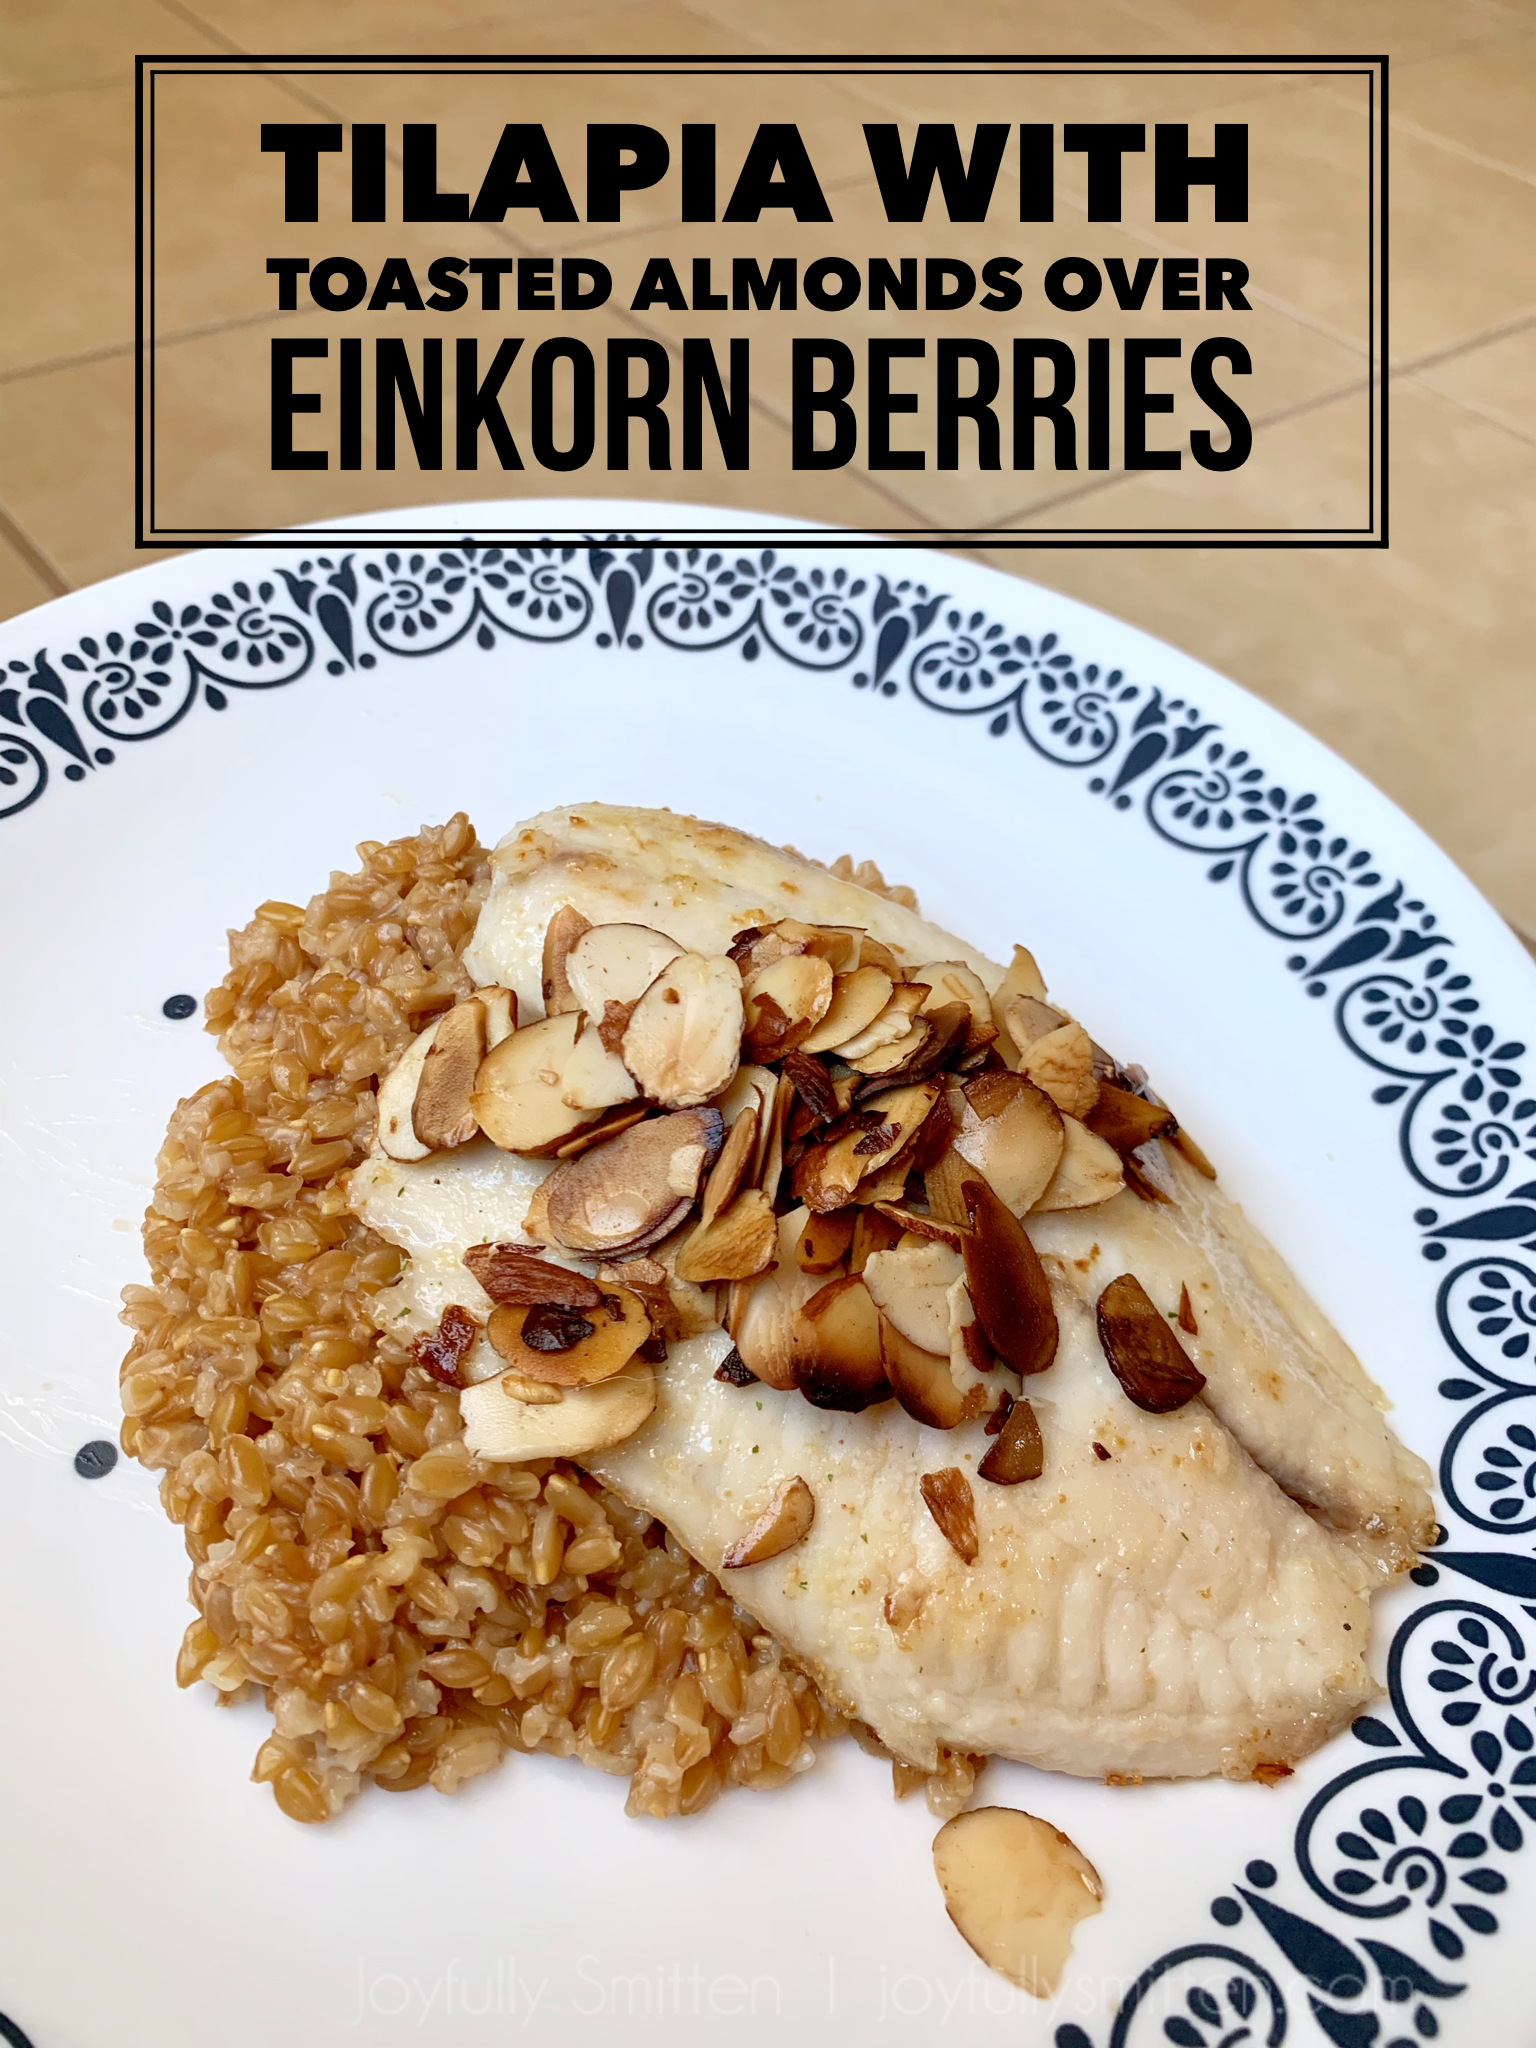 Tilapia with Toasted Almonds and Einkorn Berries